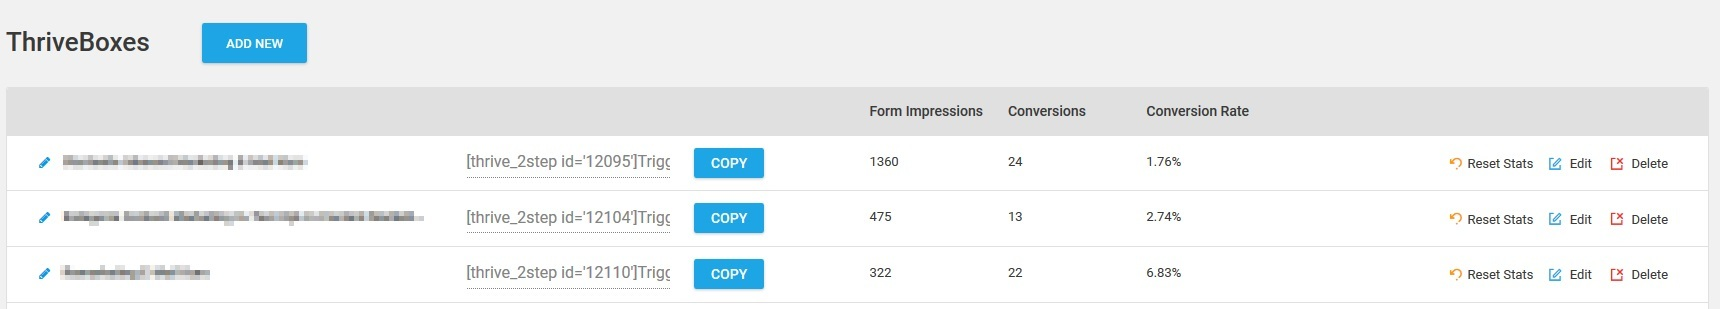 Die 3 besten E-Mail Opt-In Plugins für WordPress - ThriveLeads - 1 Thrive Boxes Statistics